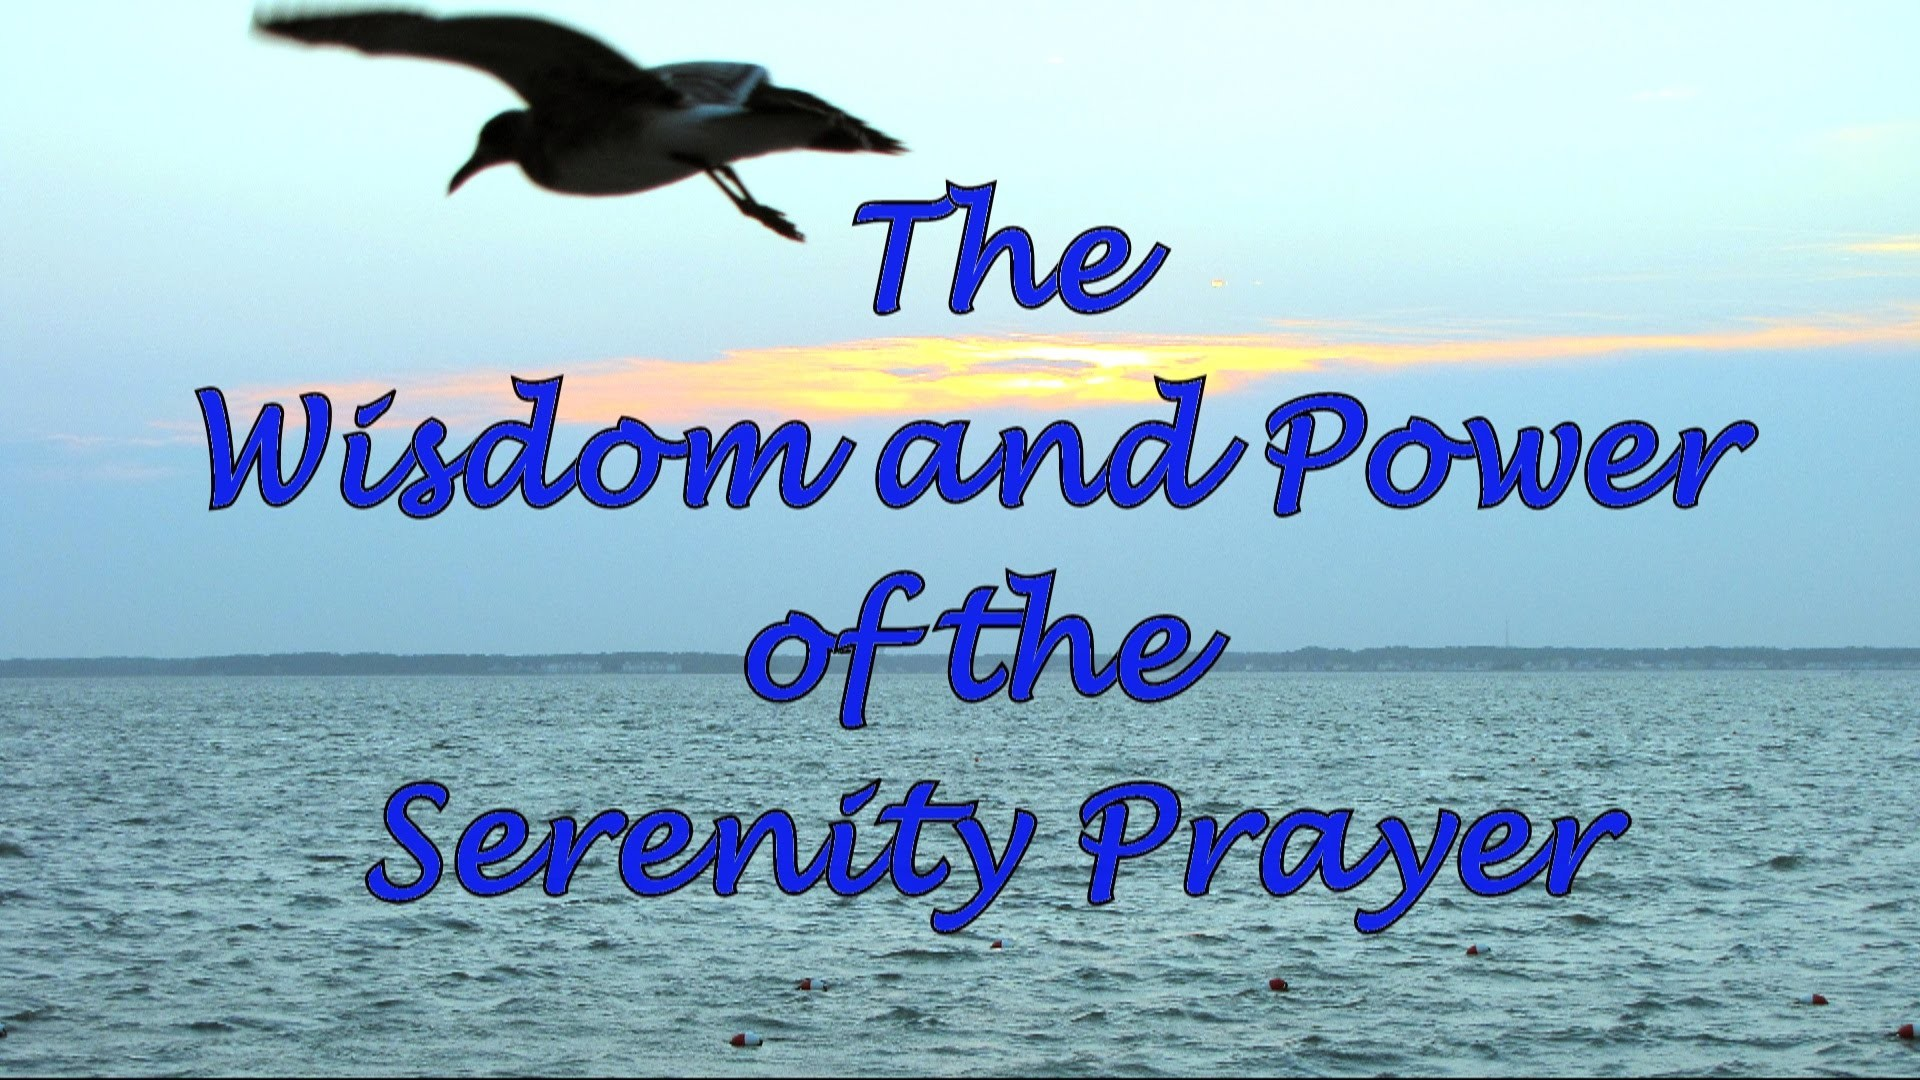 The Wisdom and Power of the Serenity Prayer